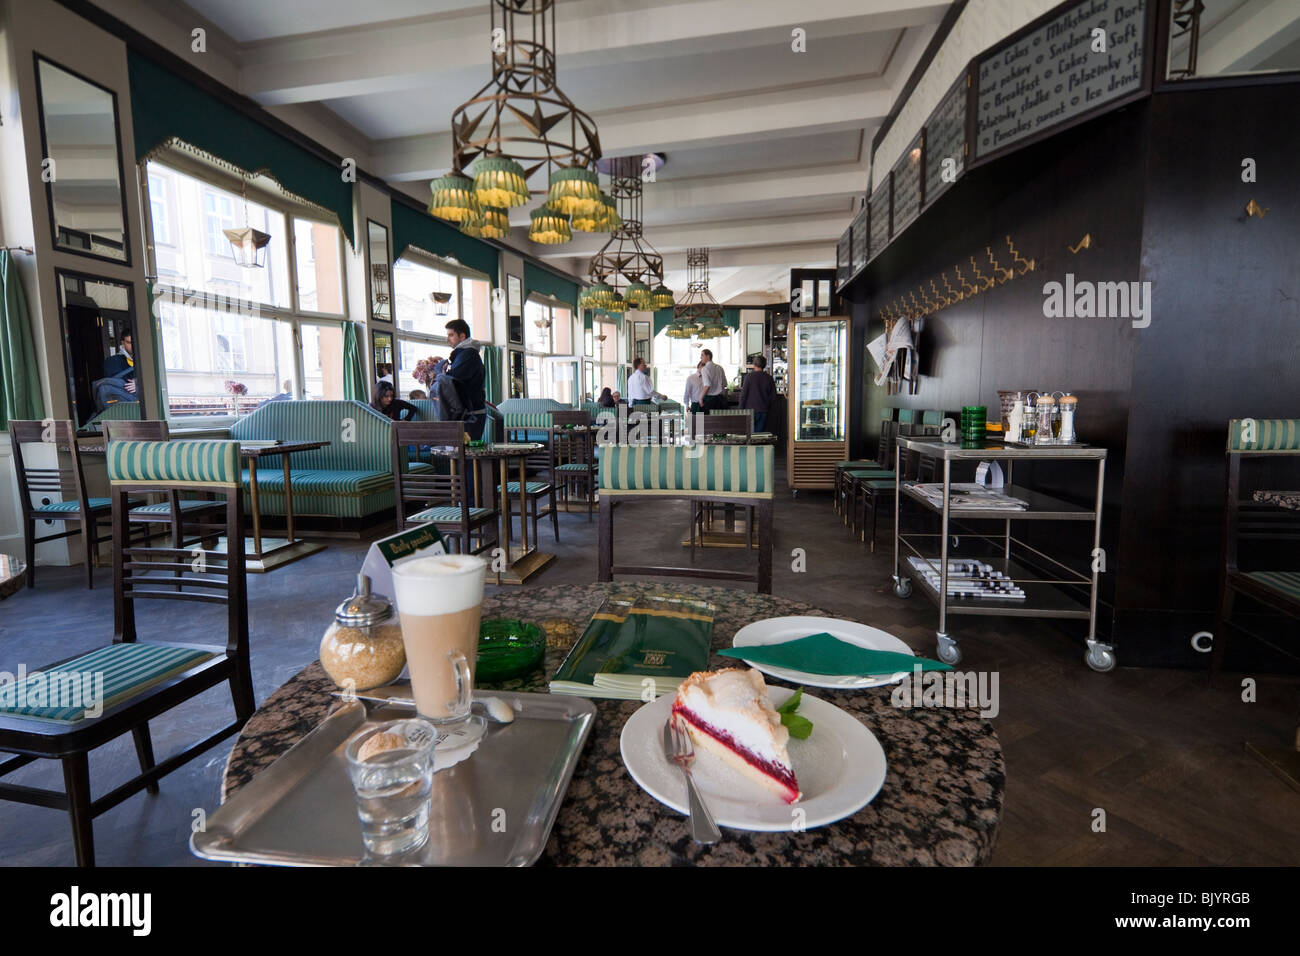 cafe, House of the Black Madonna, Old Town, Prague, Czech Republic - Stock Image